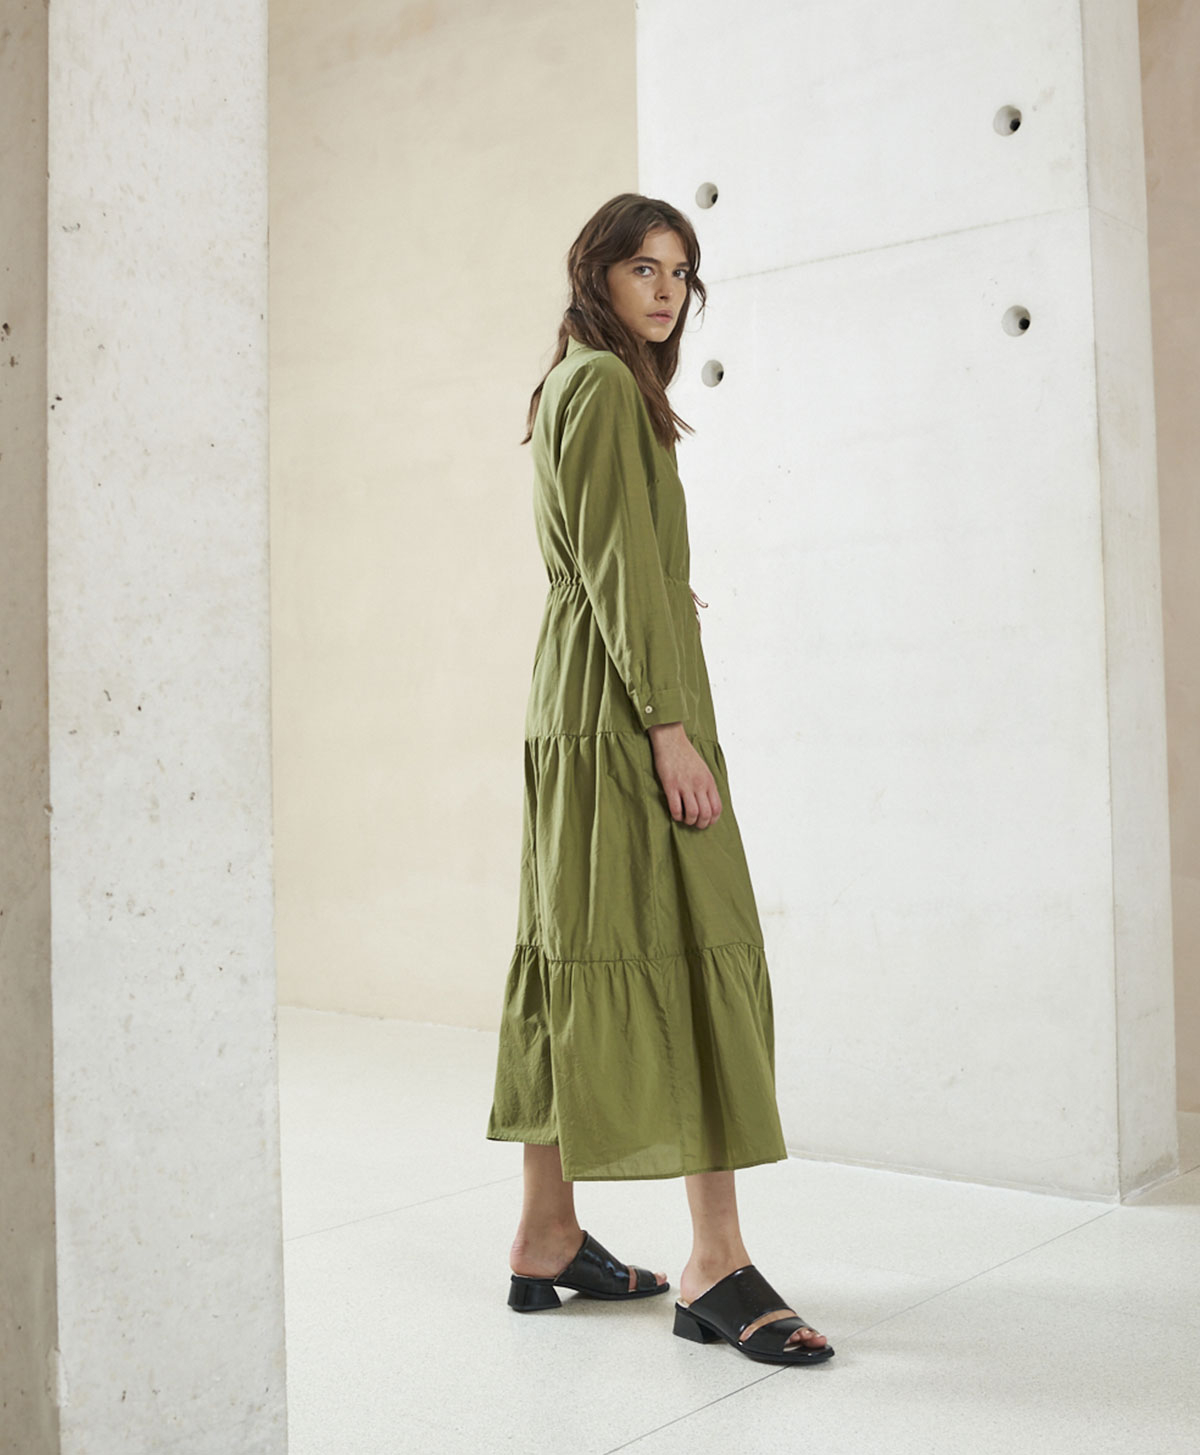 Chemisier in sage green cotton and silk blend MOMONI |  | MODR0170730